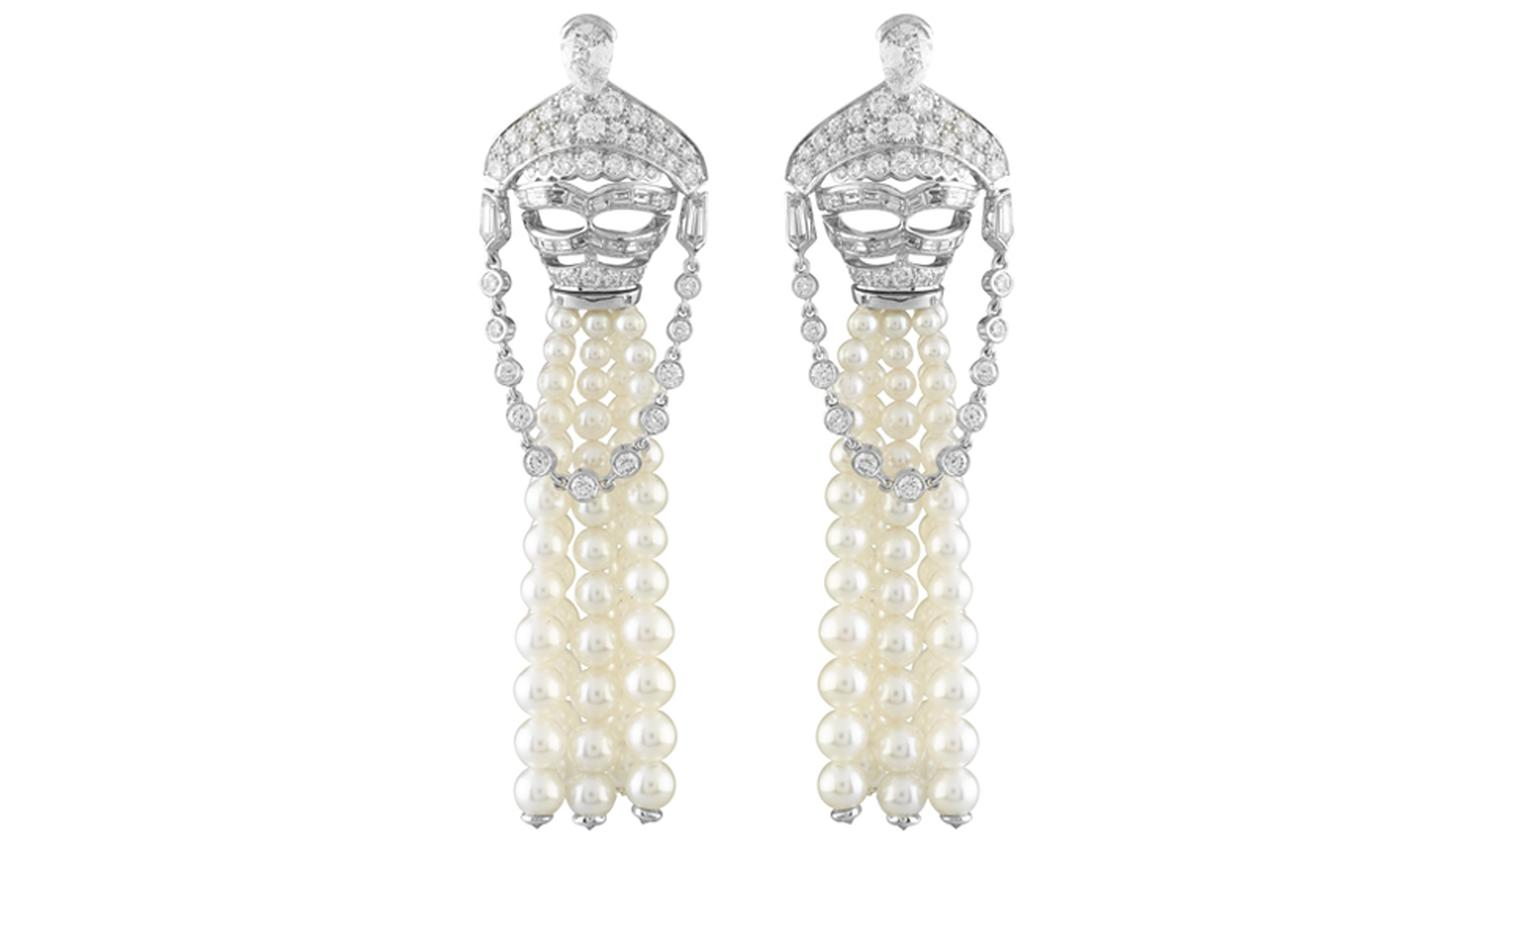 Van Cleef & Arpels, Bals de Légende, Le Bal du Palais d'Hiver, Loup diamants decor earrings.